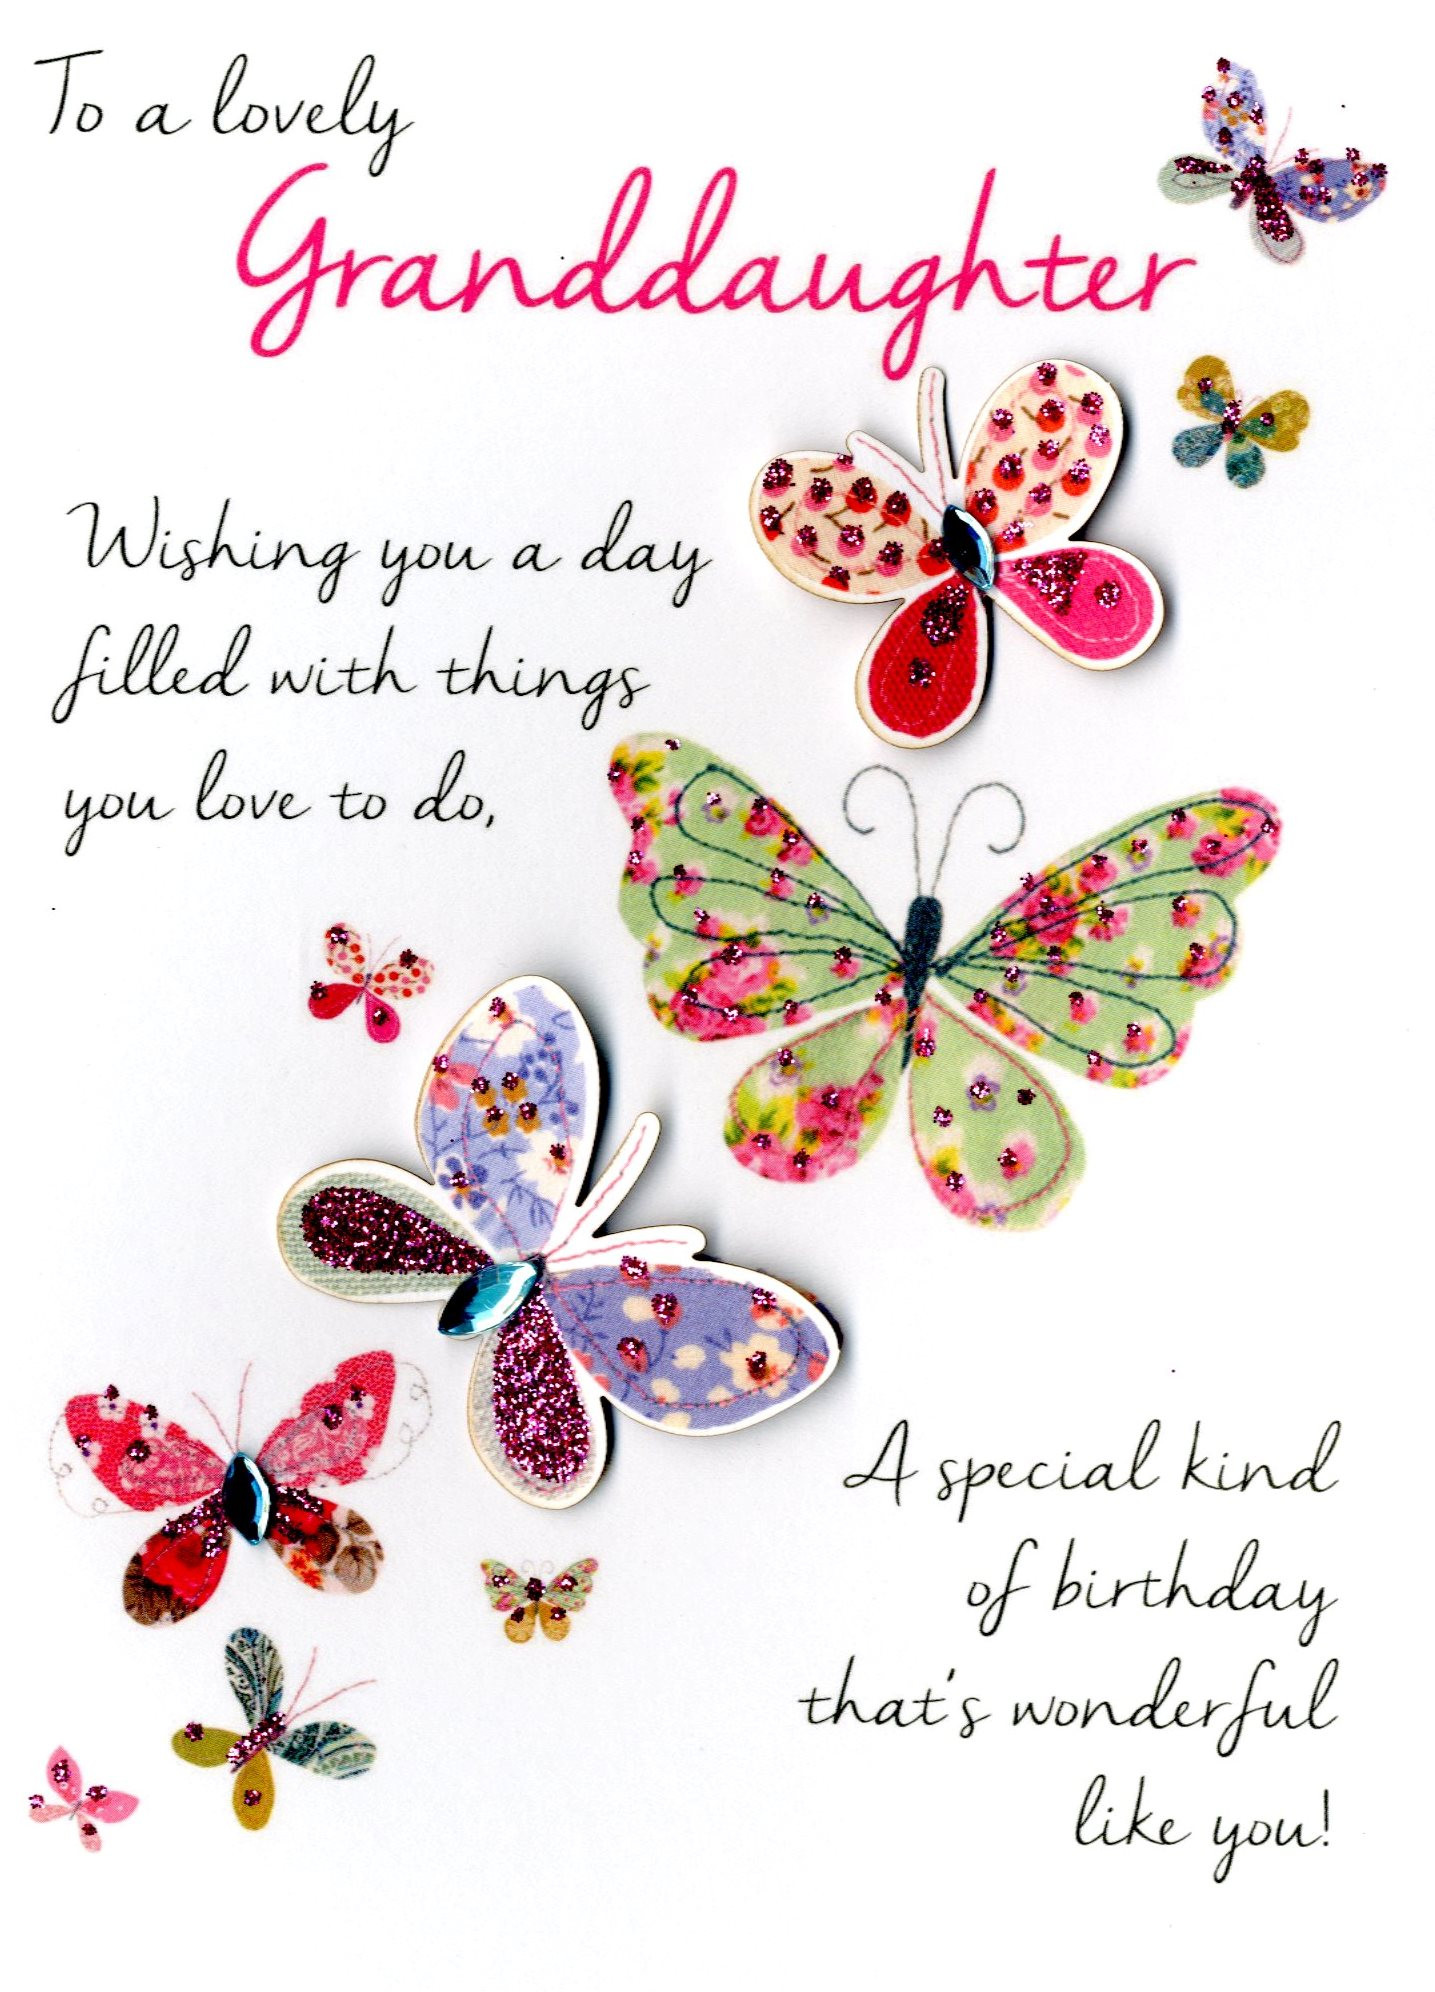 Best ideas about Granddaughter Birthday Wishes . Save or Pin Lovely Granddaughter Birthday Greeting Card Second Nature Now.